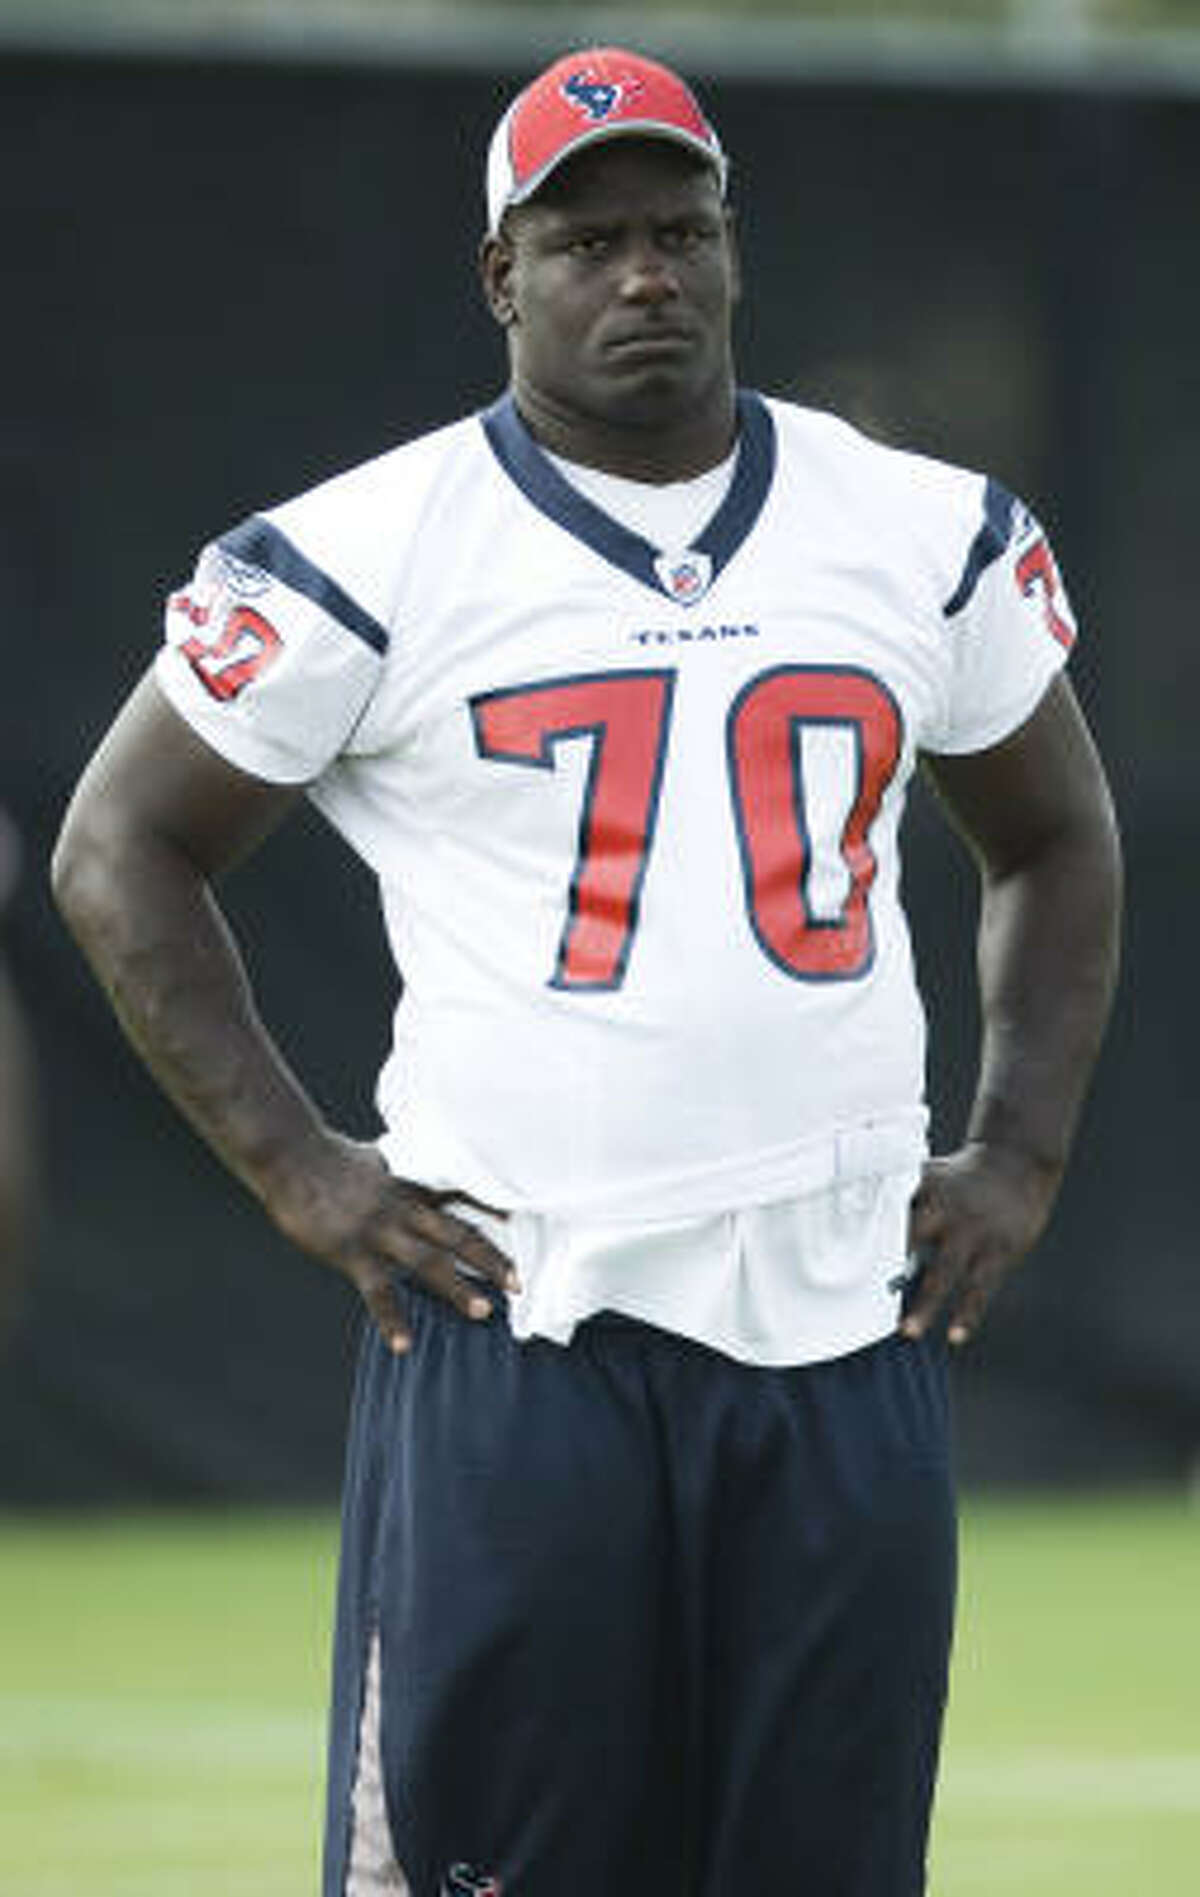 Fred Weary during his time as an offensive lineman for the Houston Texans.